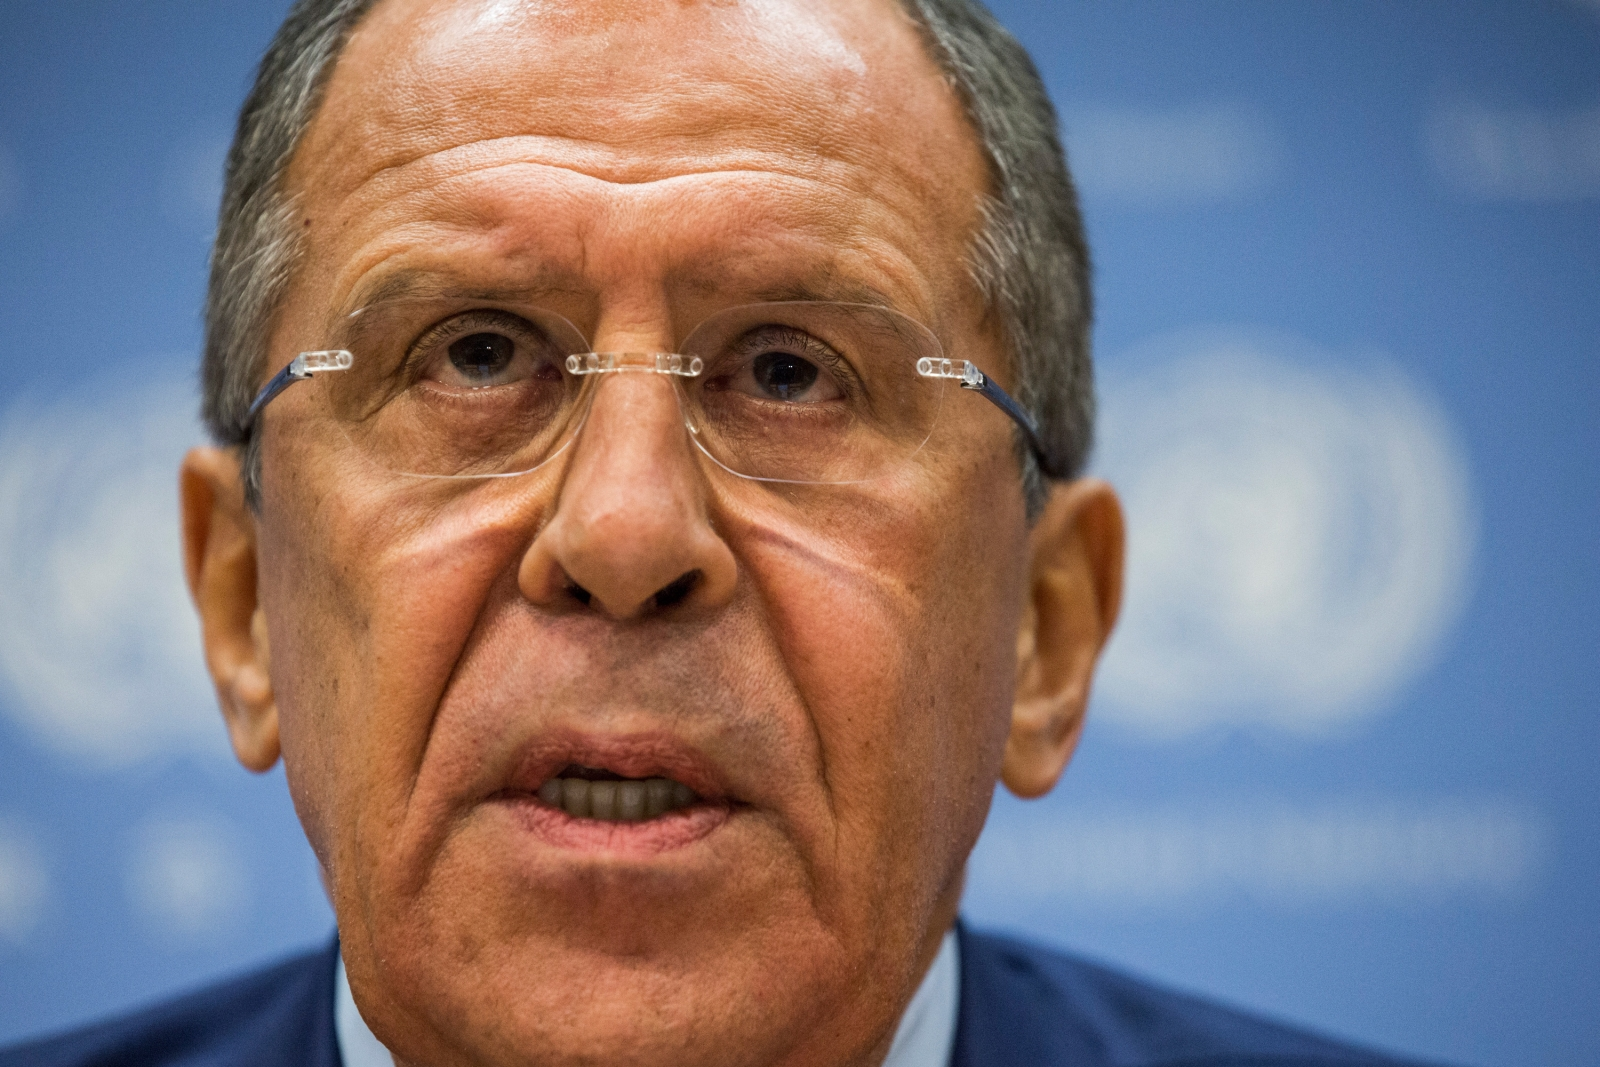 Russia Claims Innocence Over Cyberwarfare Hacking And